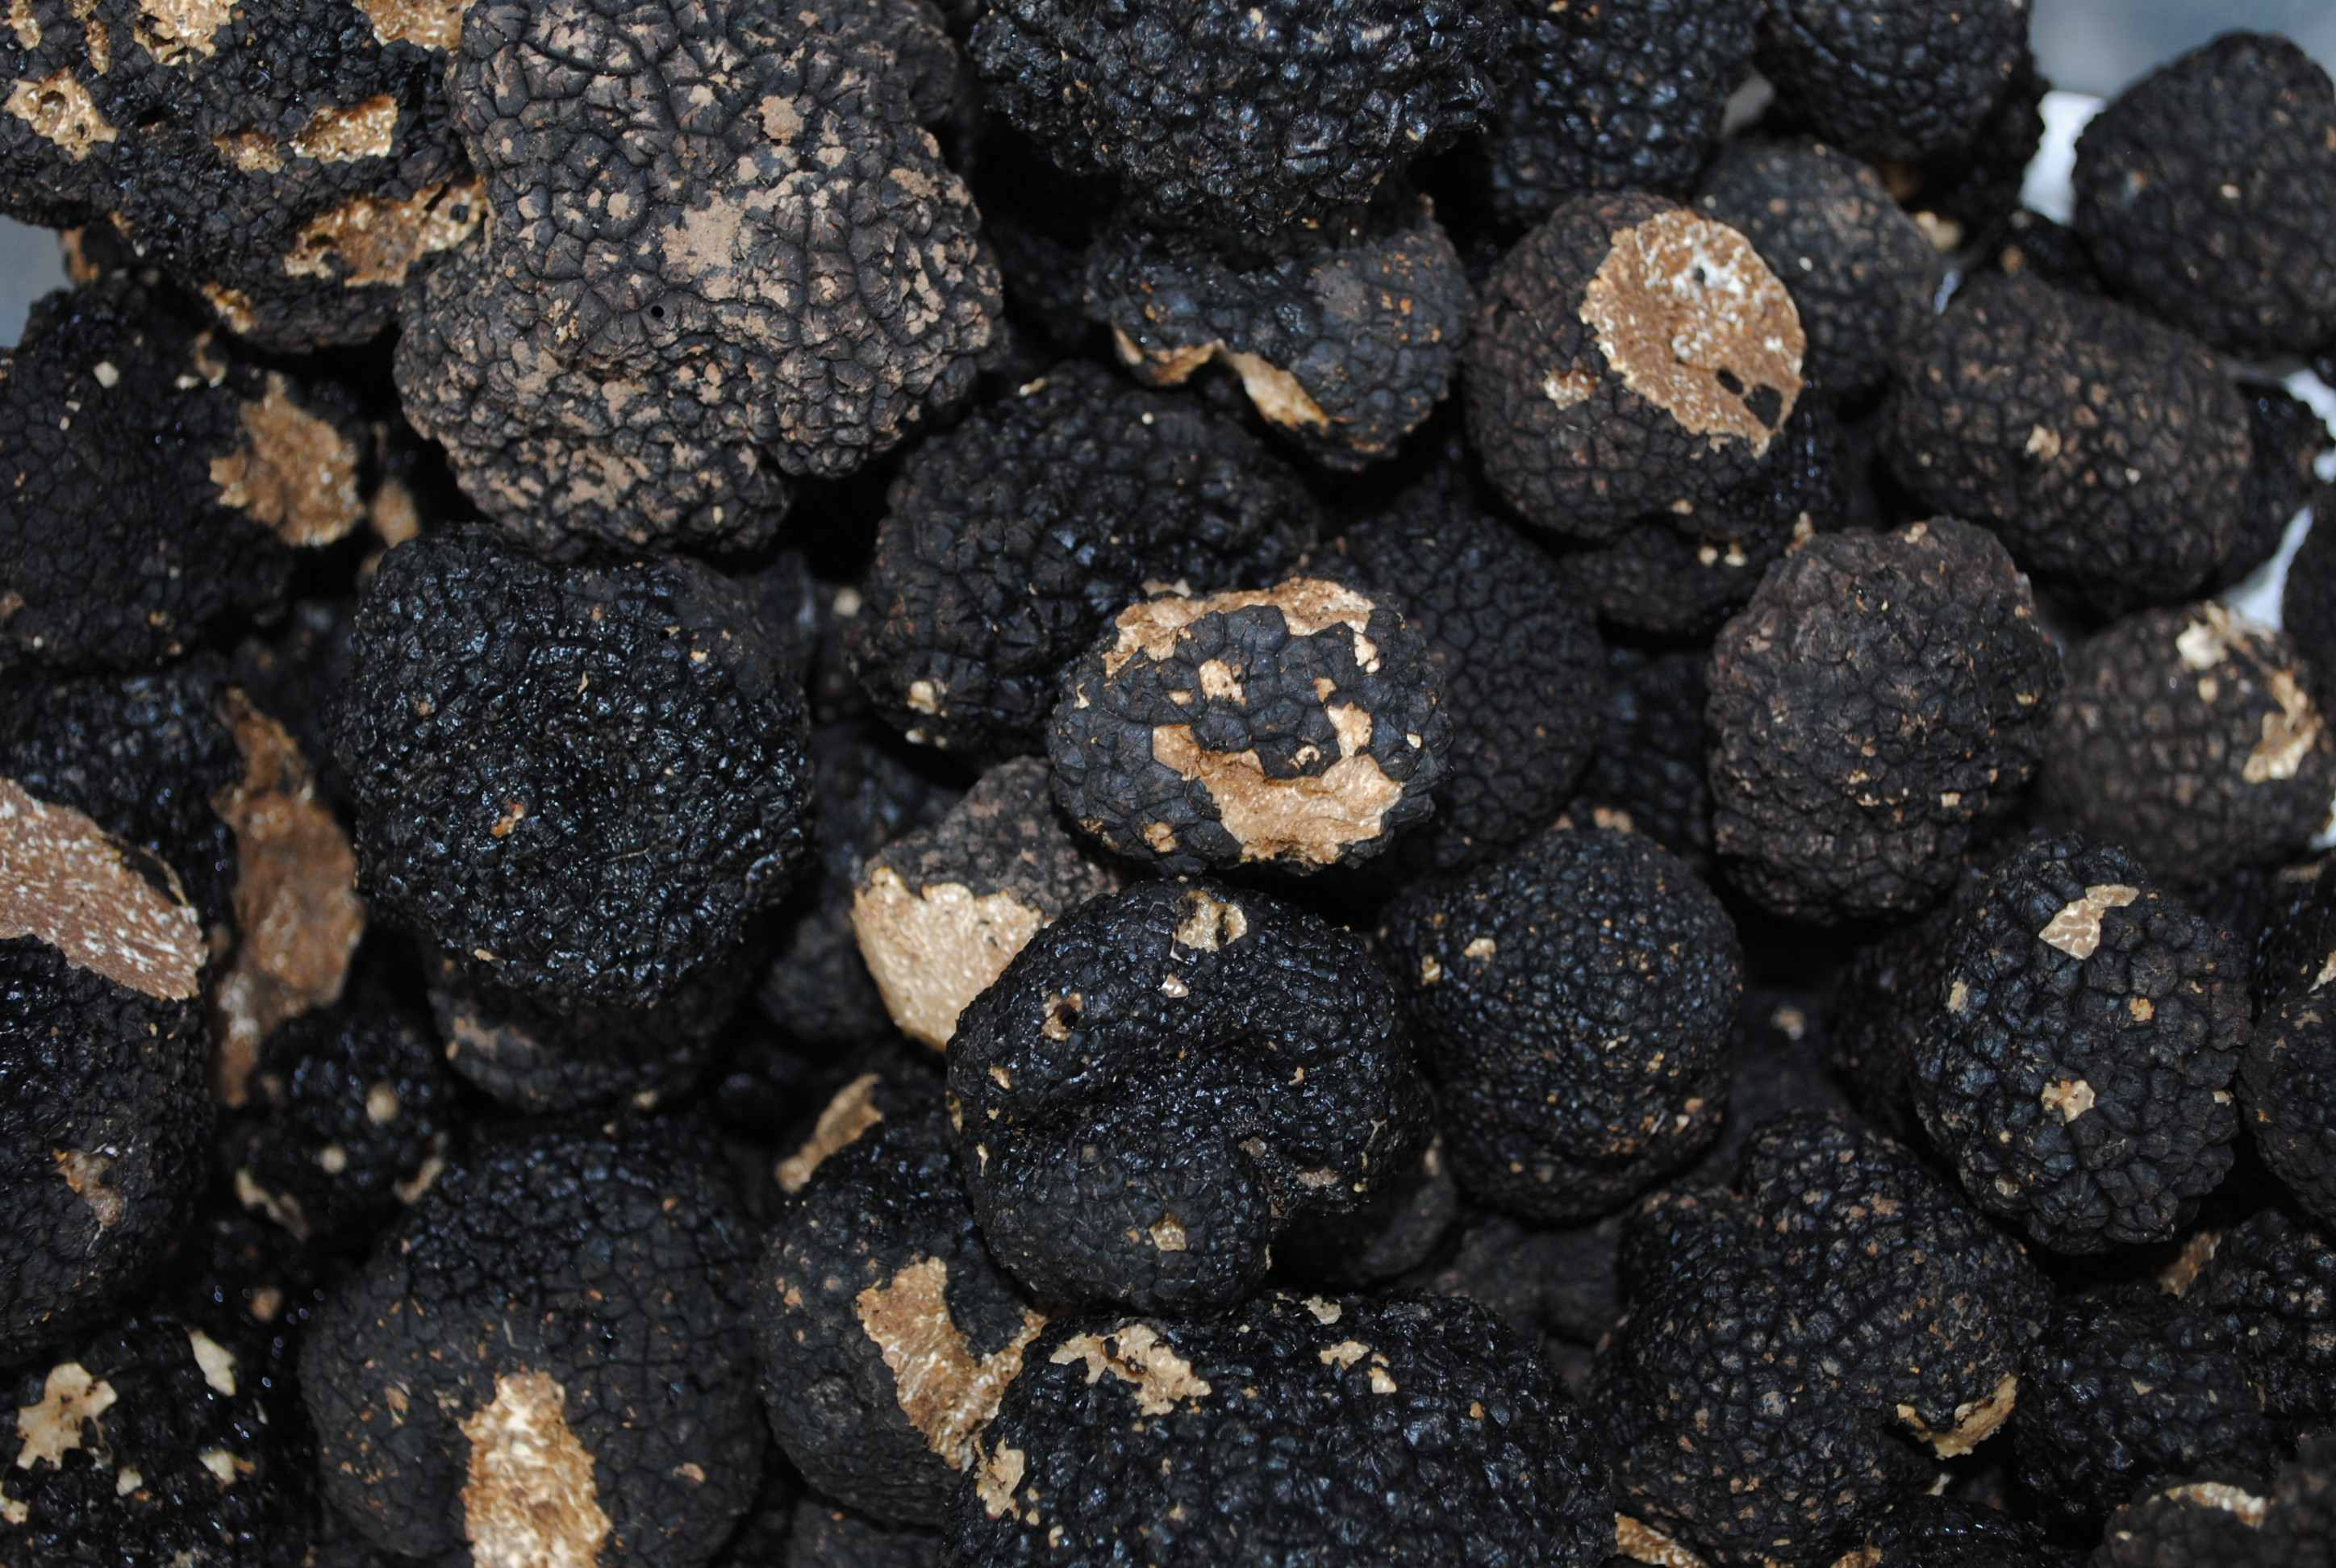 Fresh Black Truffles